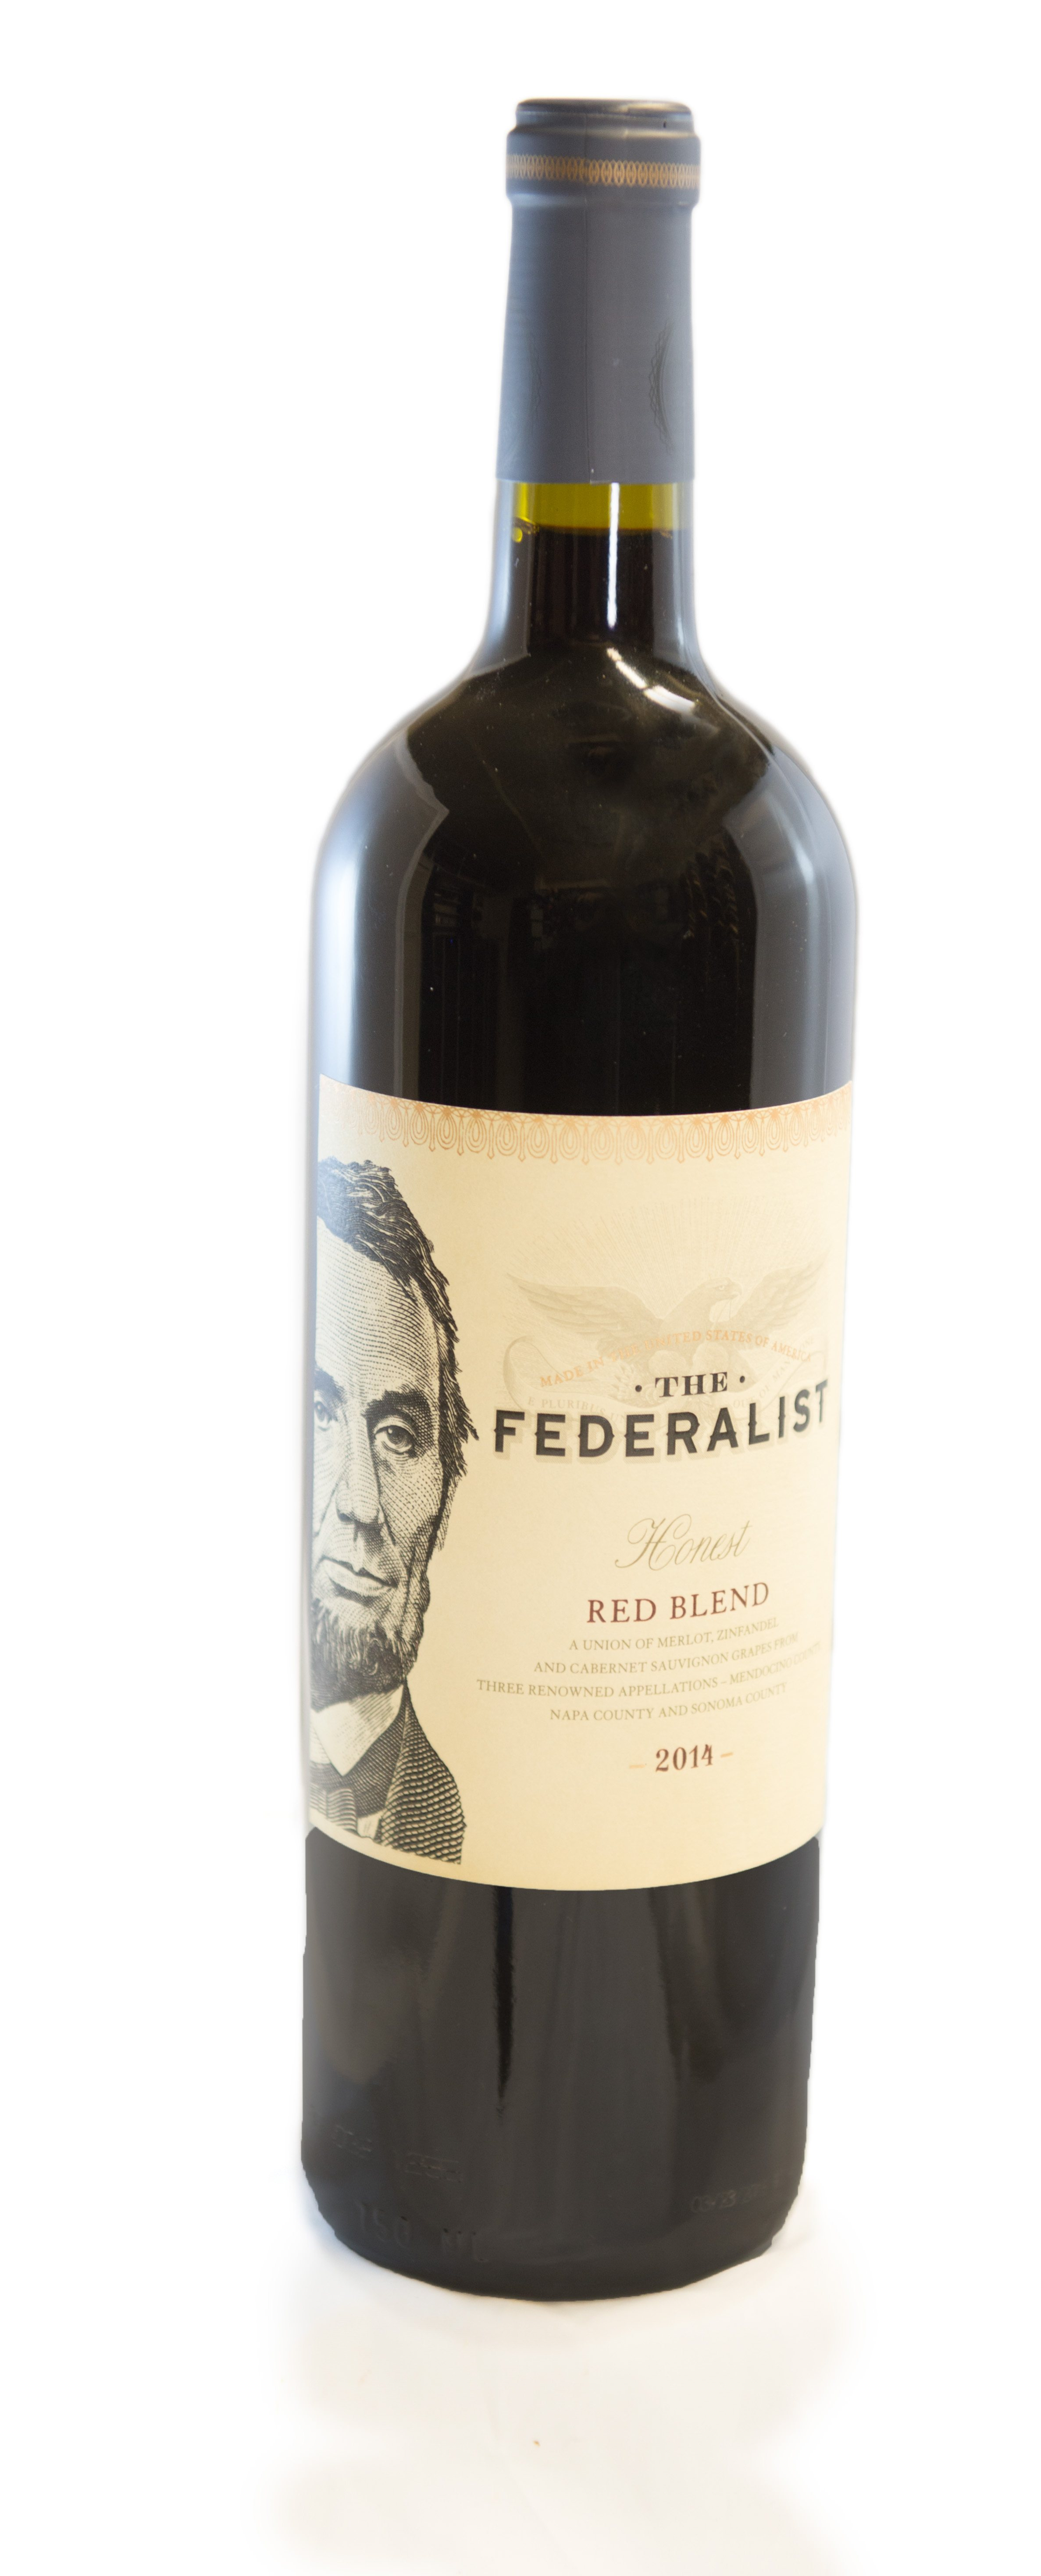 The Federalist Red Blend 2014